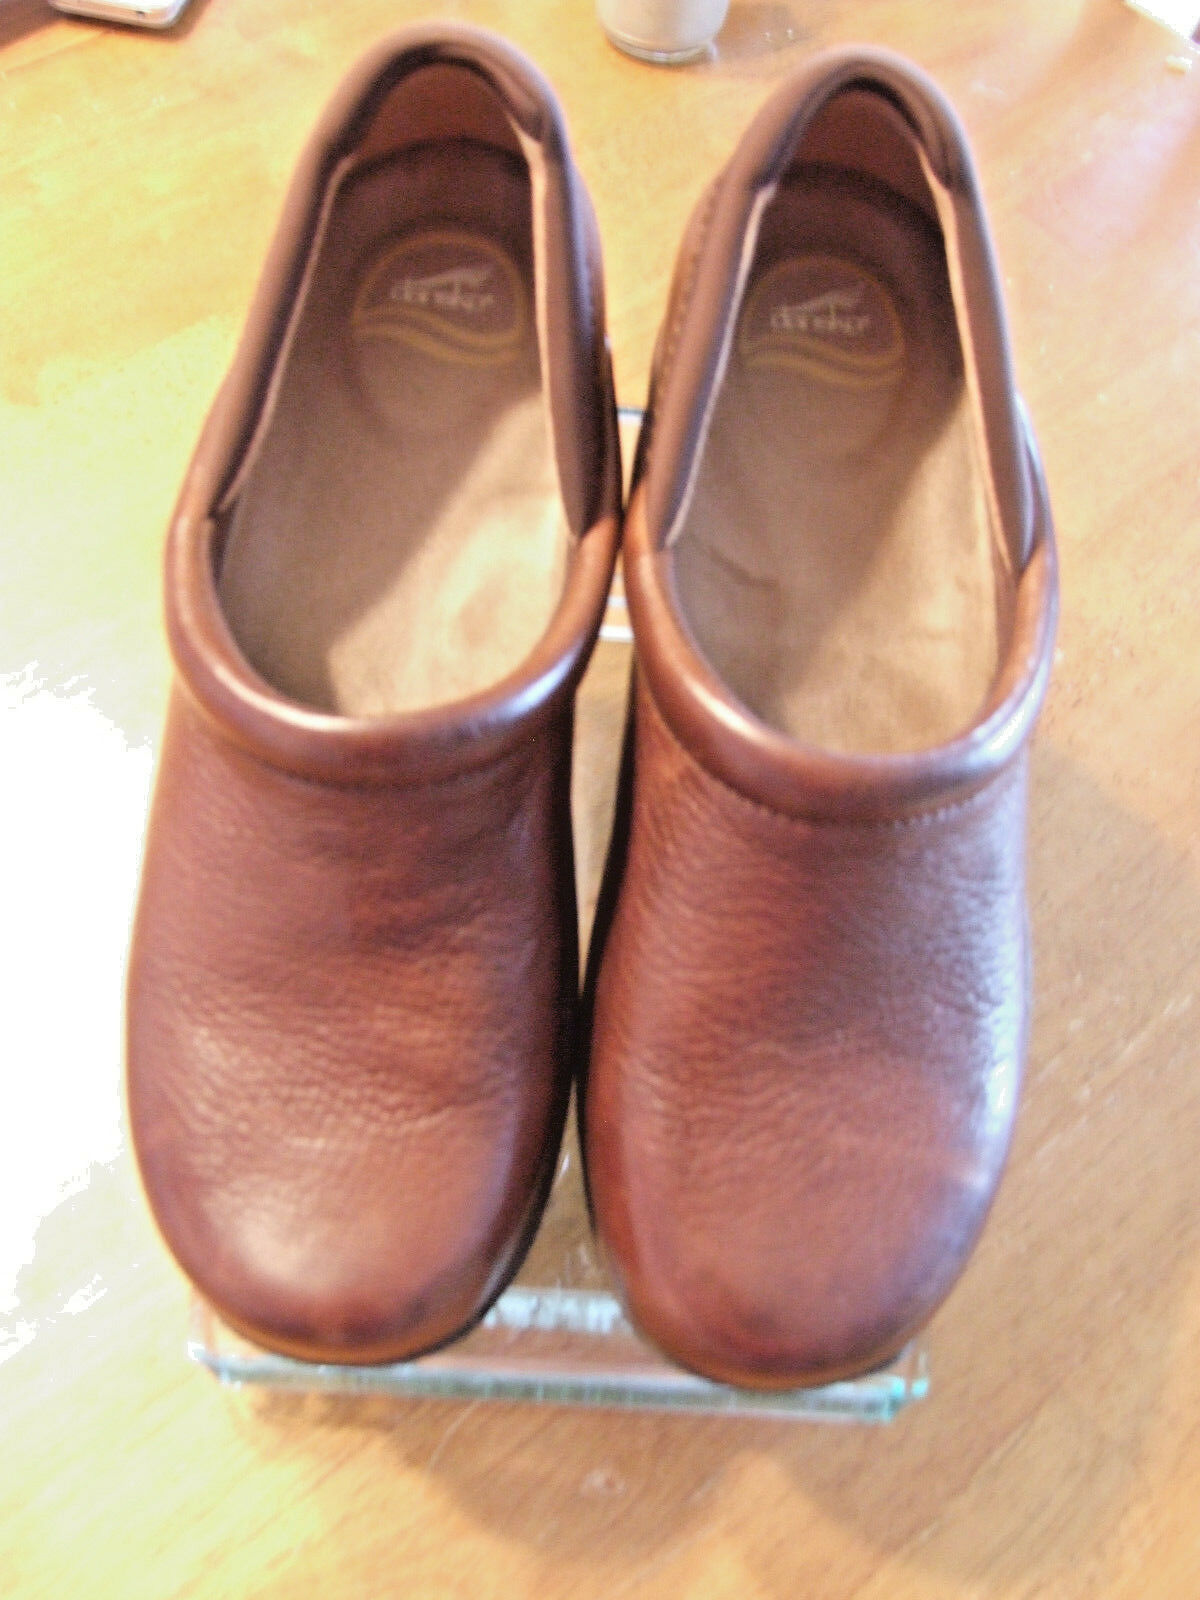 Unisex Dansko Kelsey Milled Leather Chocolate Chocolate Chocolate Slip-on shoes Size EU 41 c1e563